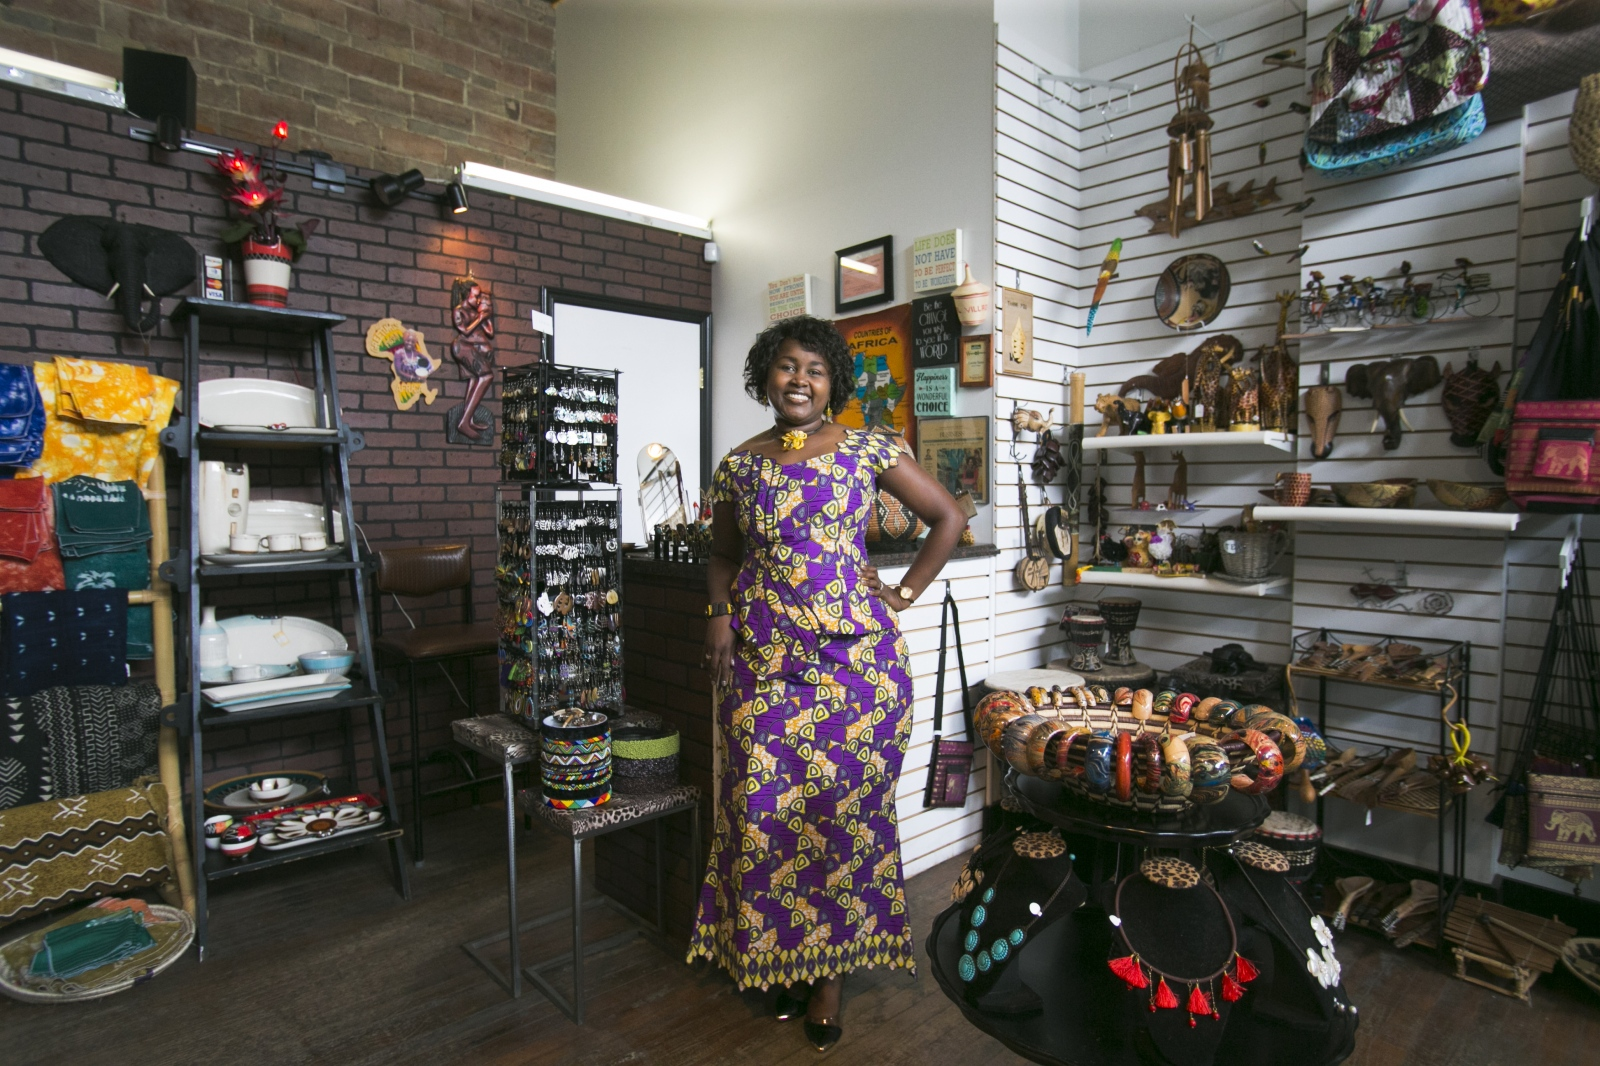 Louise Sano, owner of Global Villages and Global Chic on Grant Street, wears a favorite dress made from African wax print fabric.